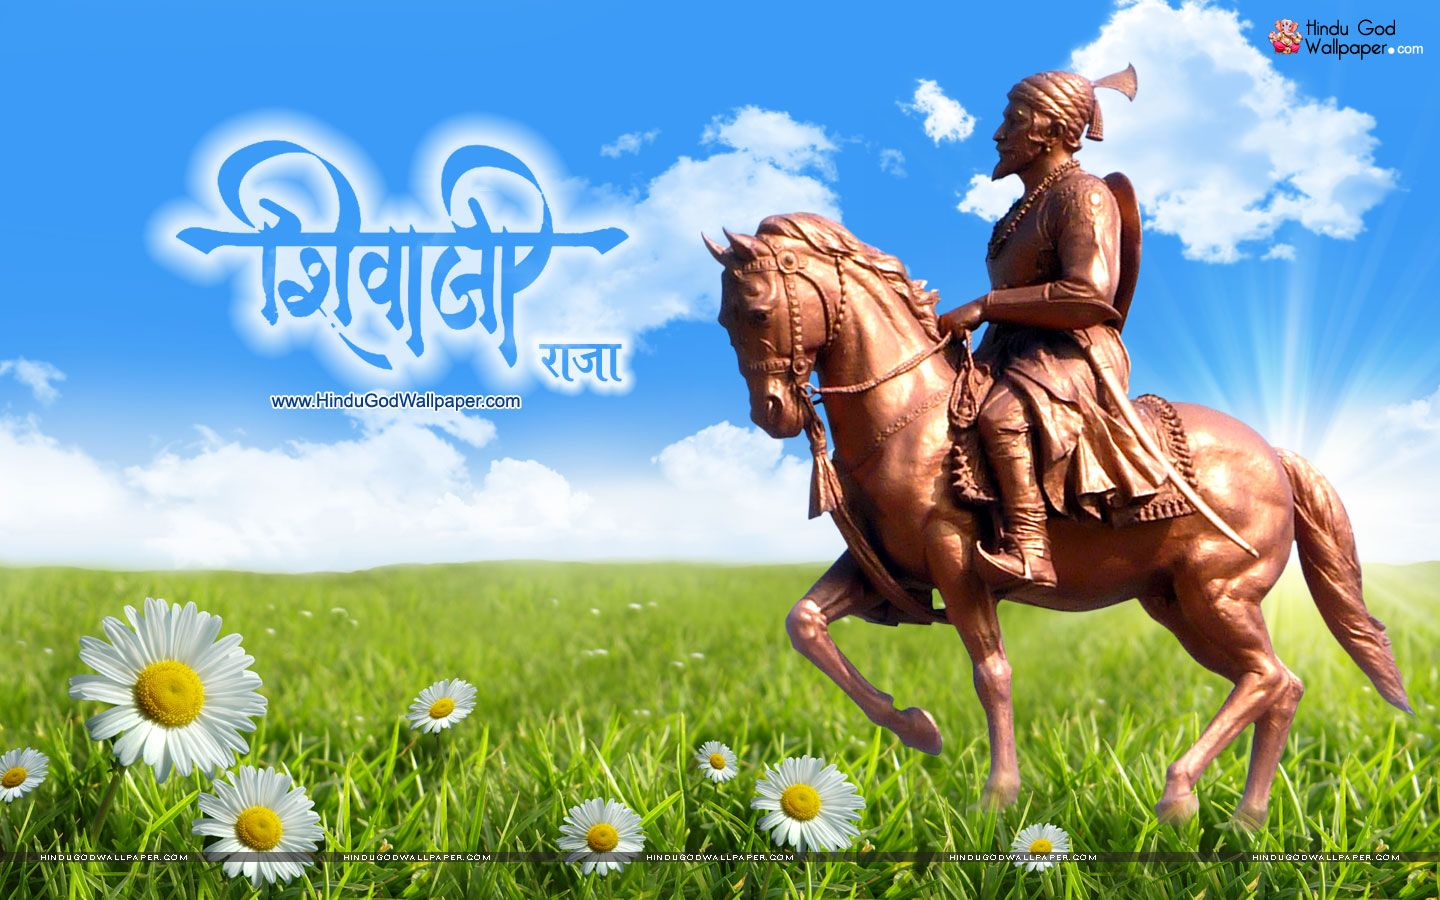 Raje shivaji video download